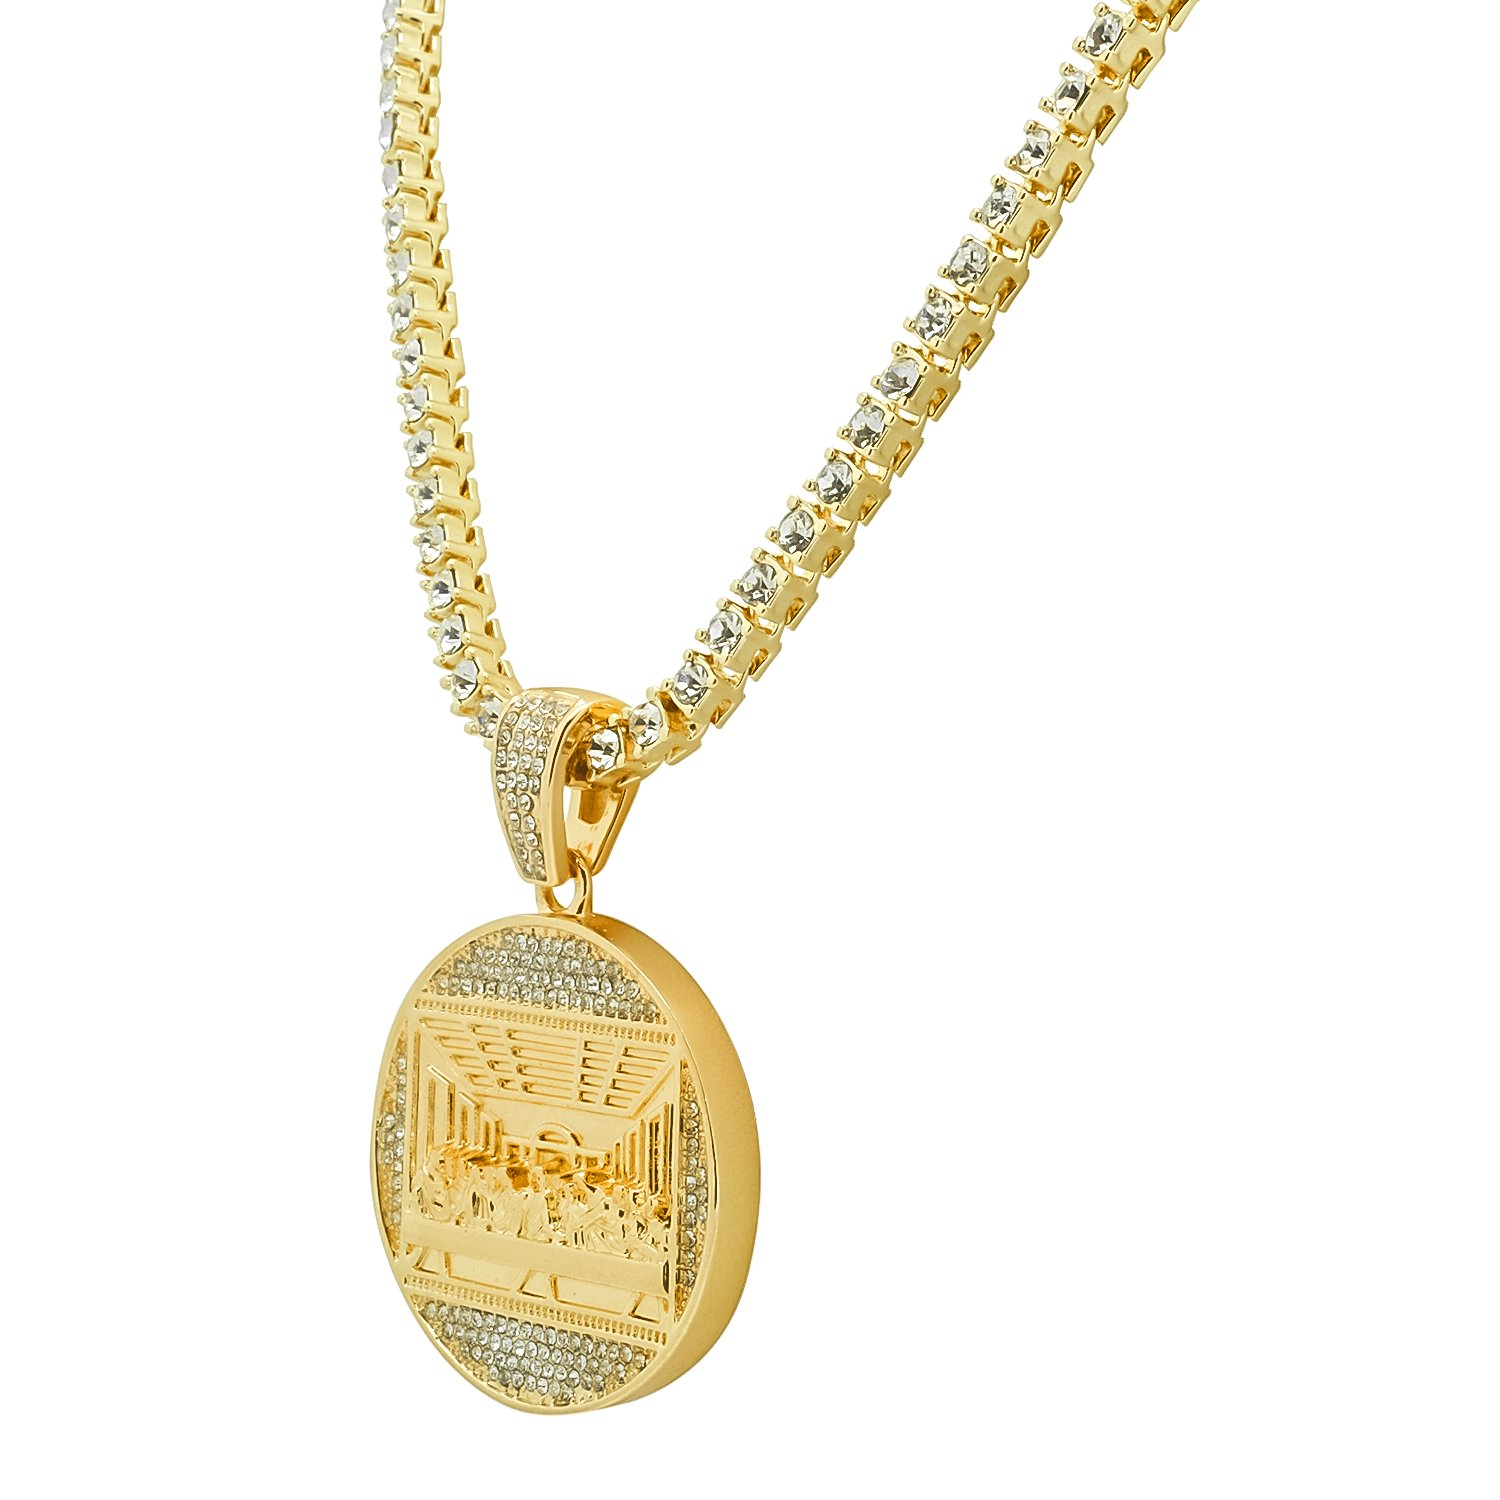 Yellow Gold-Tone Iced Out Hip Hop Bling The Last Supper Pendant 1 Row Stones Tennis Chain 24 Necklace Choker Chain